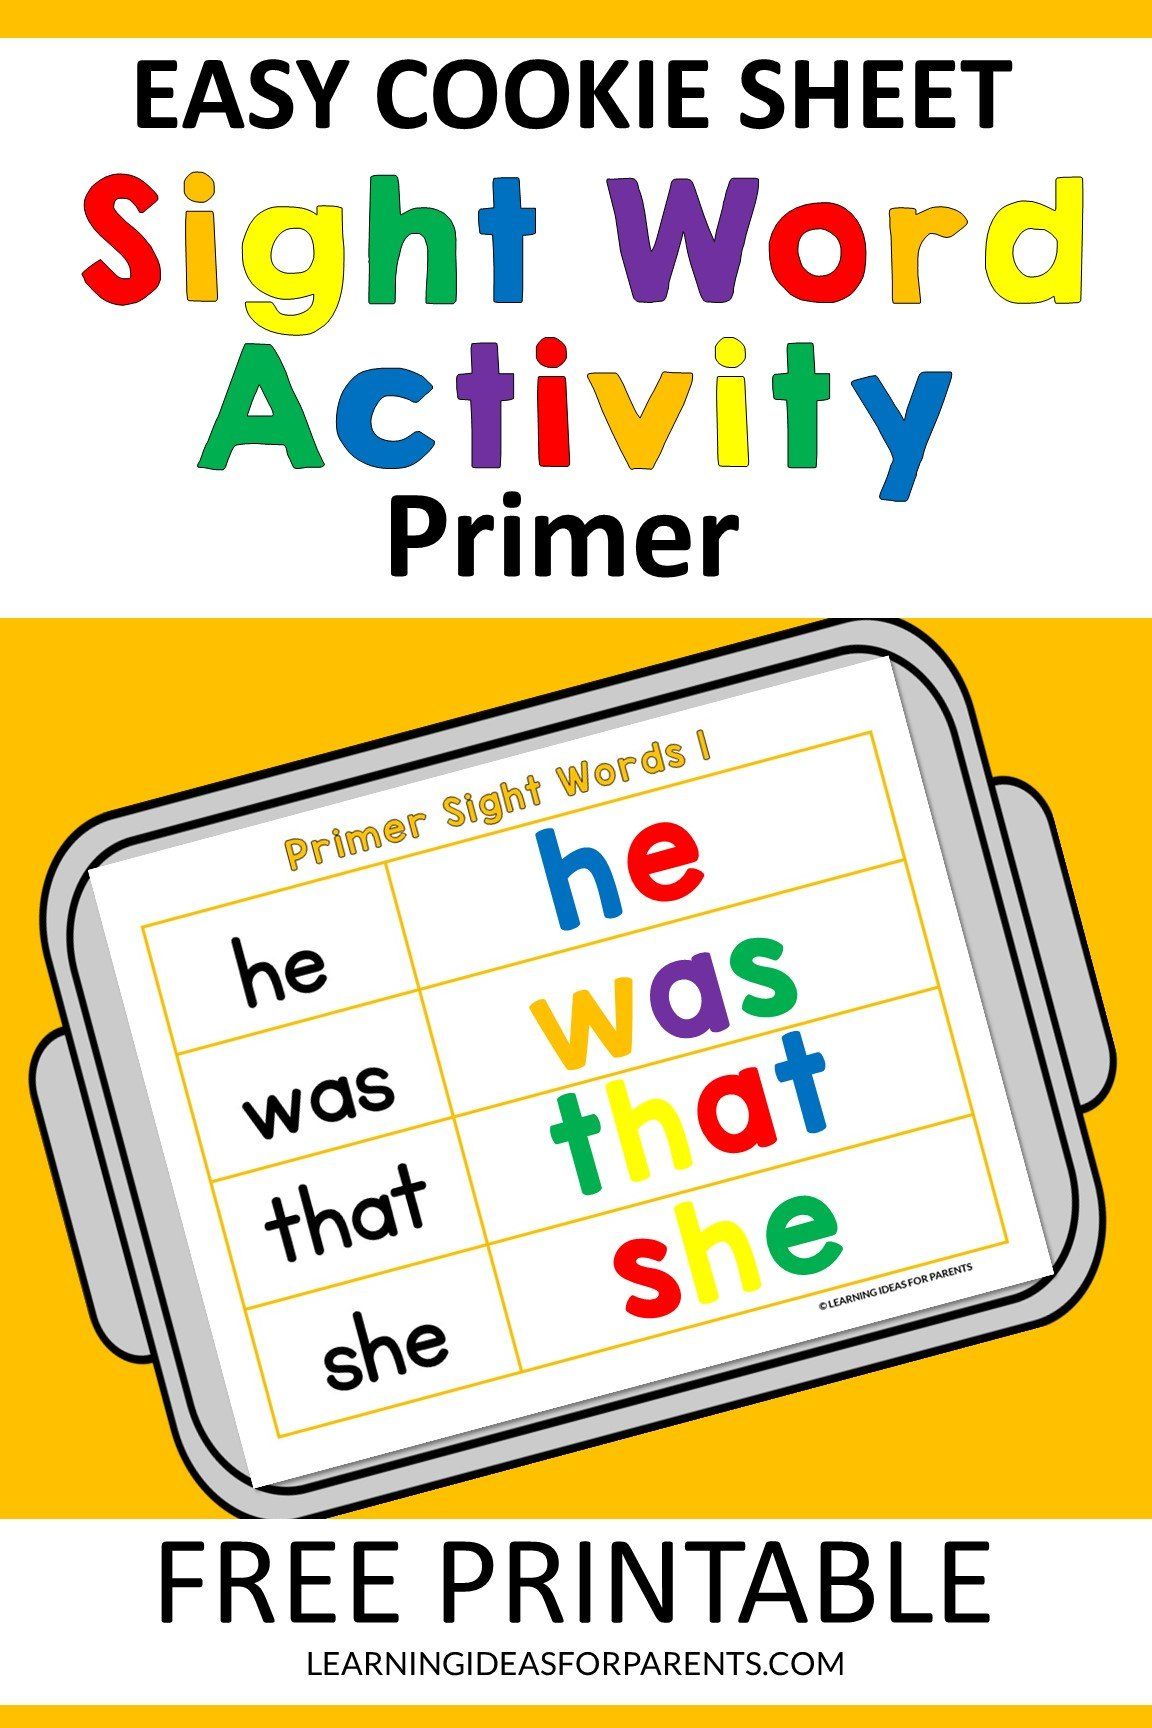 Free printable easy cookie sheet primer sight word activity.